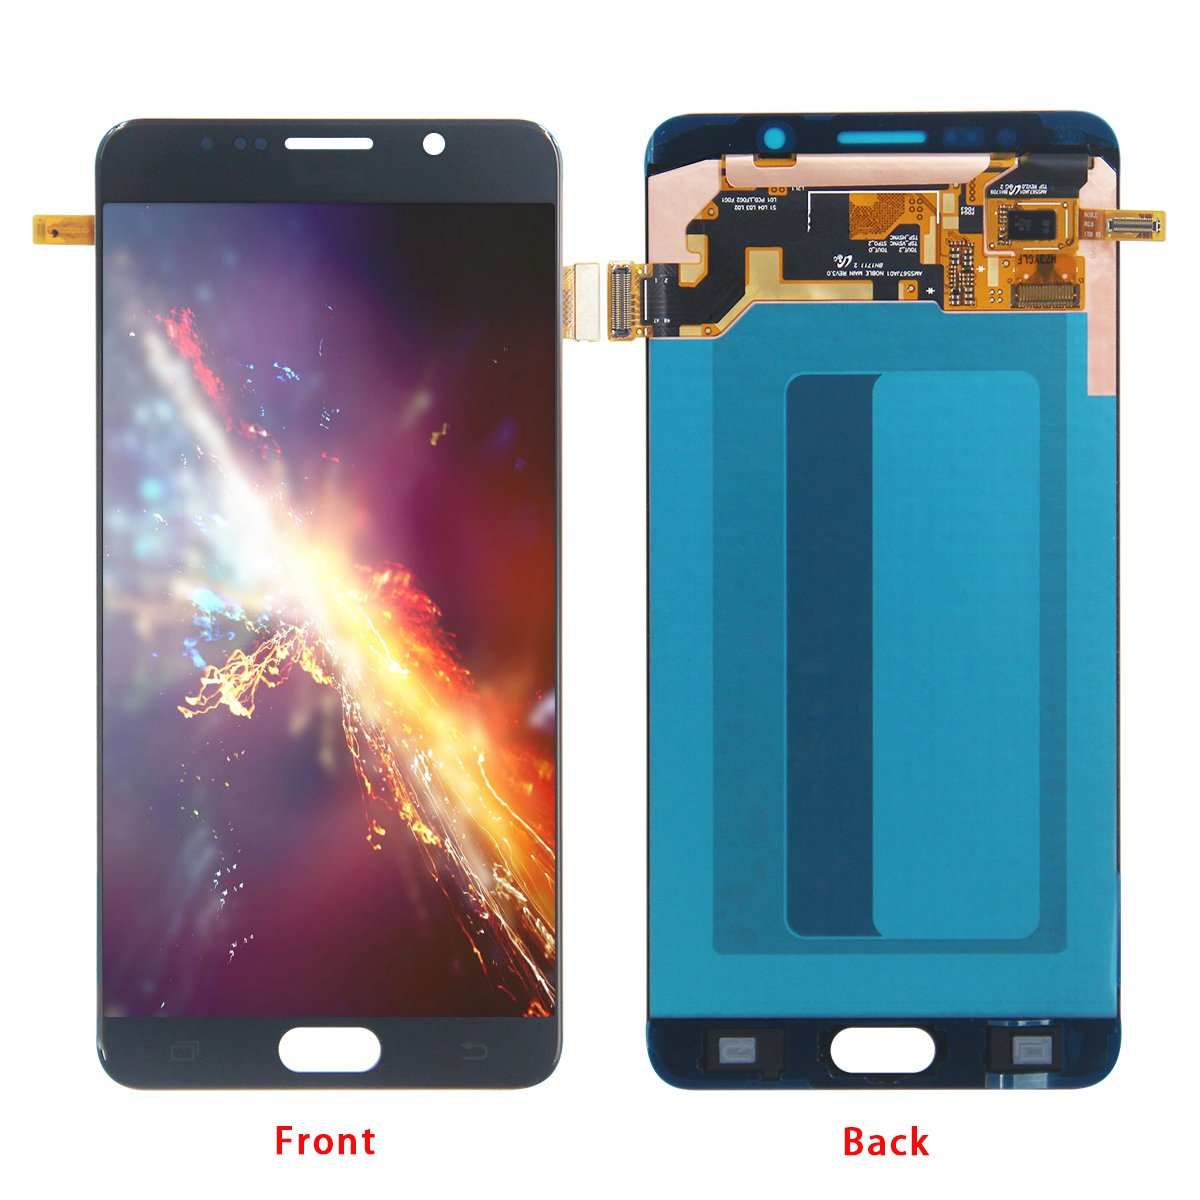 HJSDtech LCD Touch Glass Screen Display Digitizer Assembly Replacement for Samsung Galaxy Note 5 N920 N920f N920t N920a ( Black)